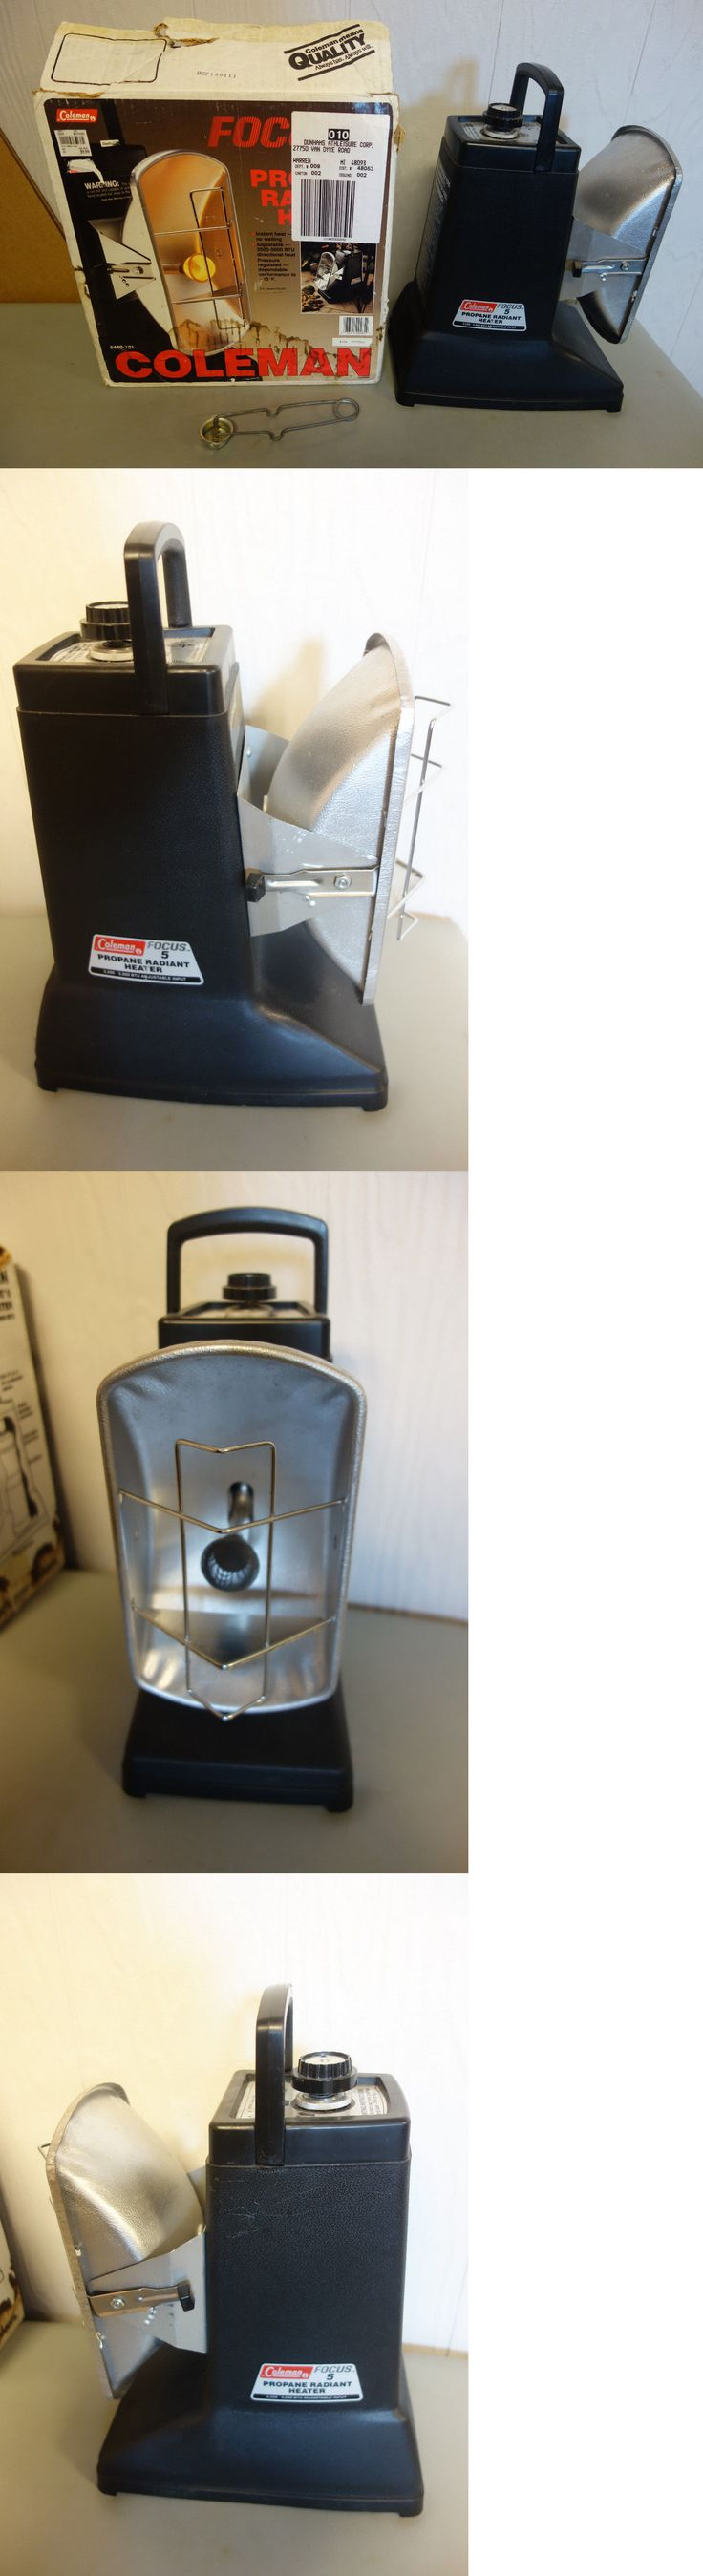 Generators and Heaters 16039: Coleman Focus 5 Propane Radiant Heater ~ 3500-5000 Btu Nos -> BUY IT NOW ONLY: $75 on eBay!